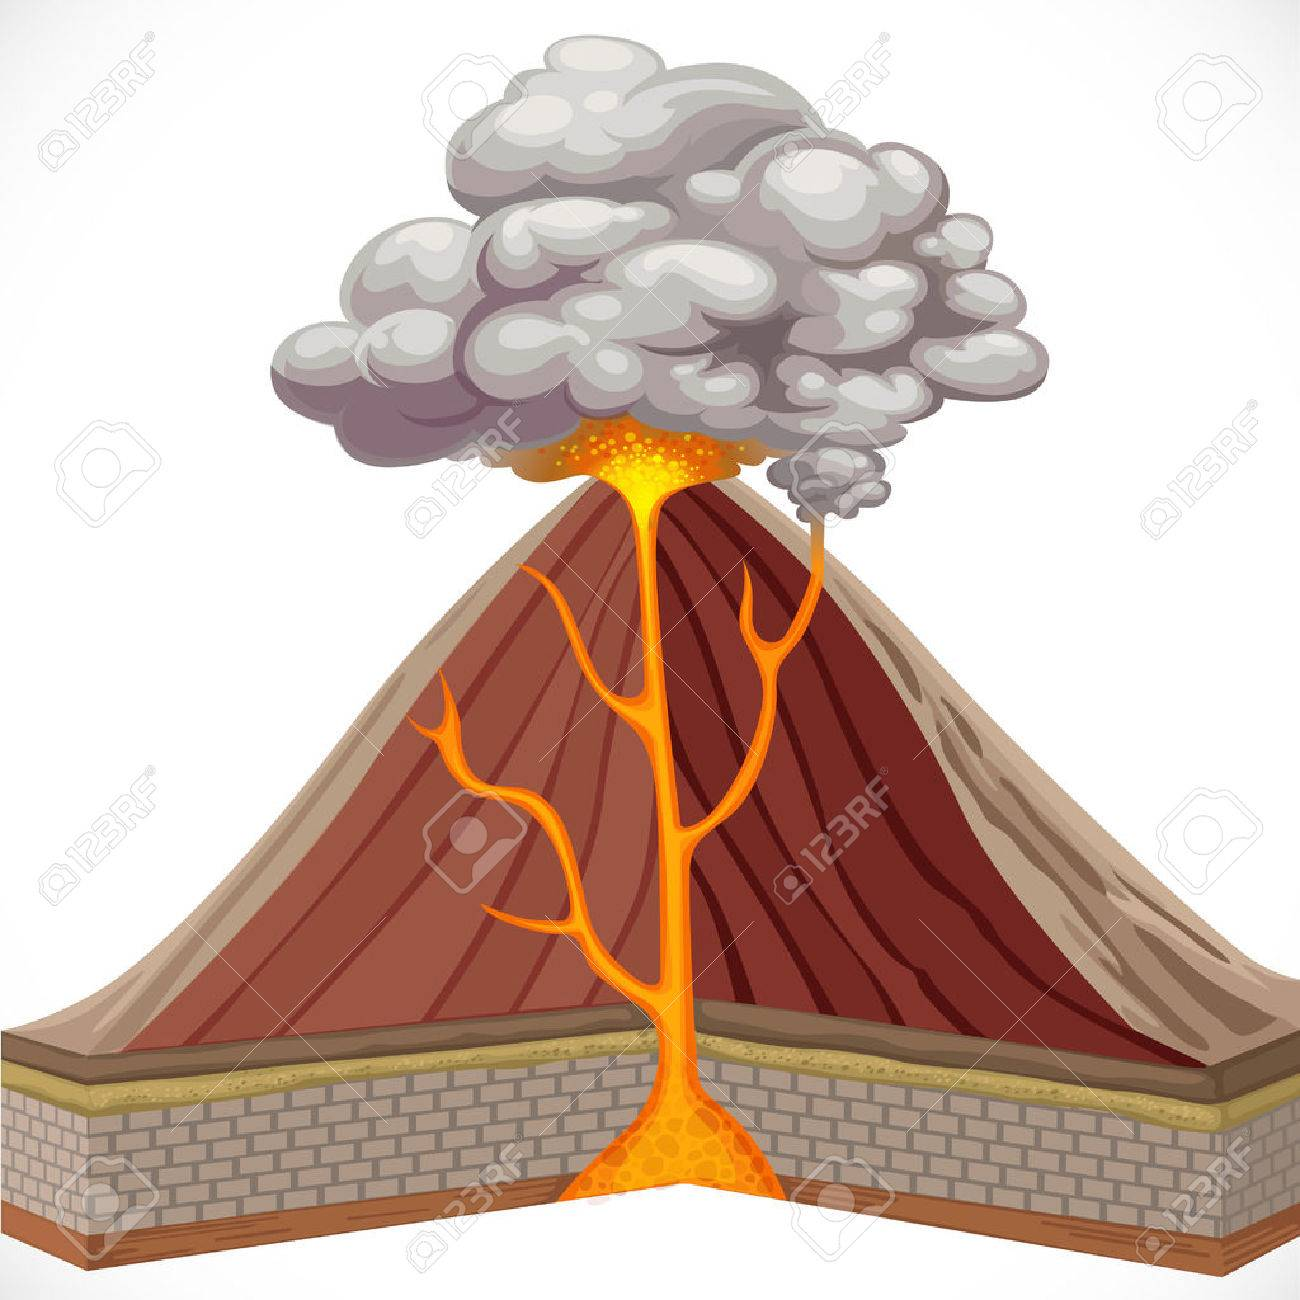 Diagram of volcano isolated on white background royalty free diagram of volcano isolated on white background stock vector 31070827 ccuart Image collections